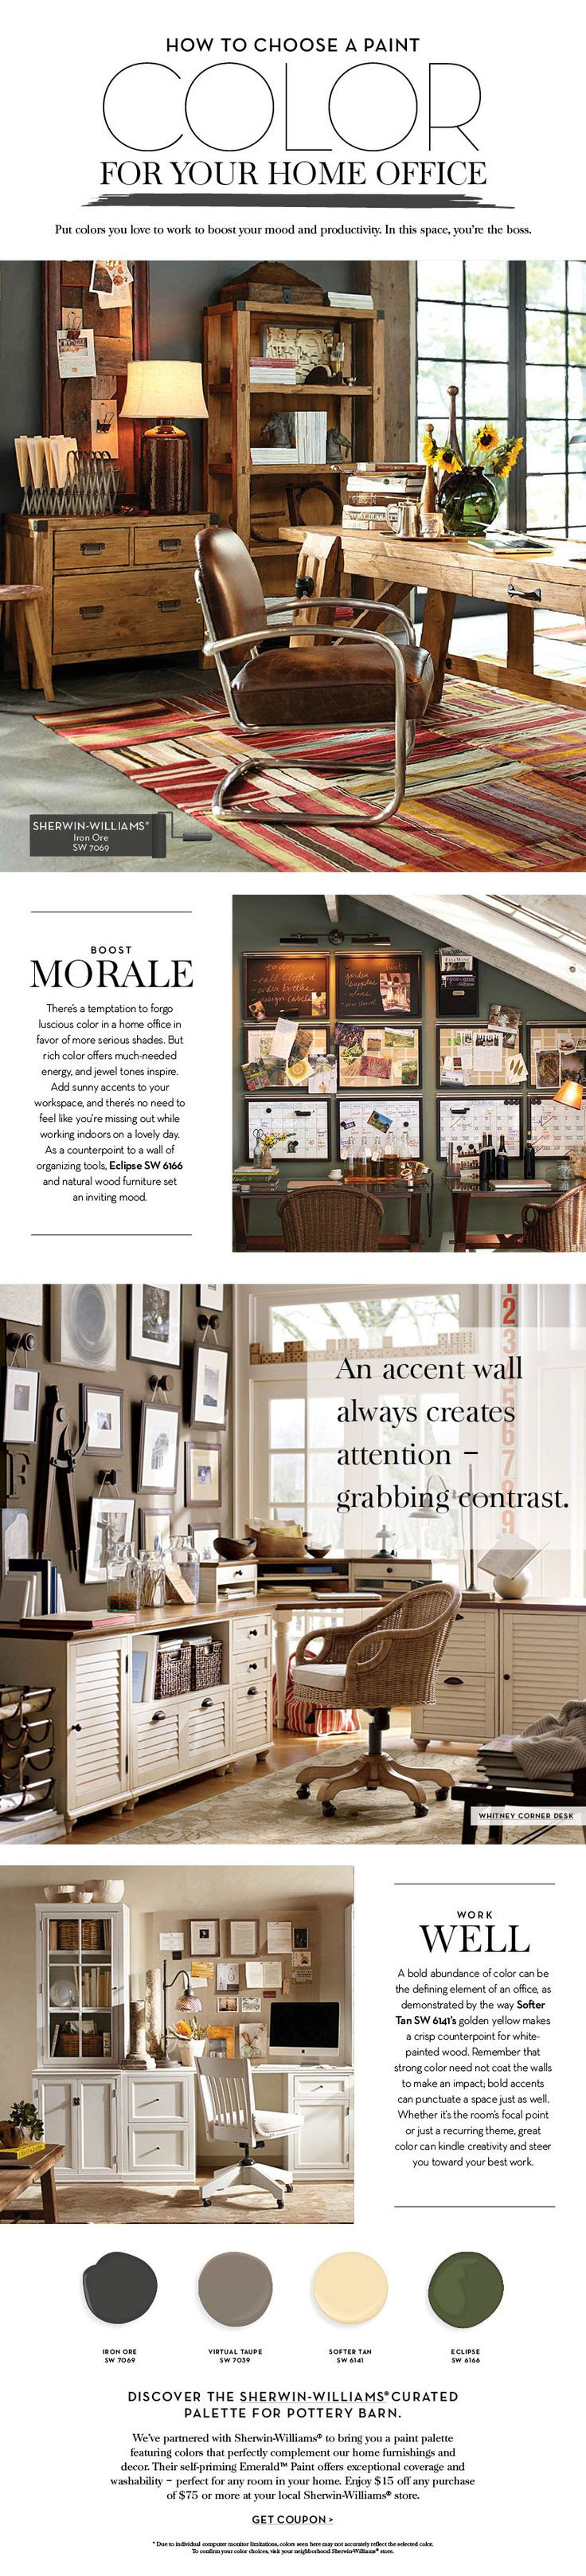 Choose a Paint Color For Your Home Office | Pottery Barn